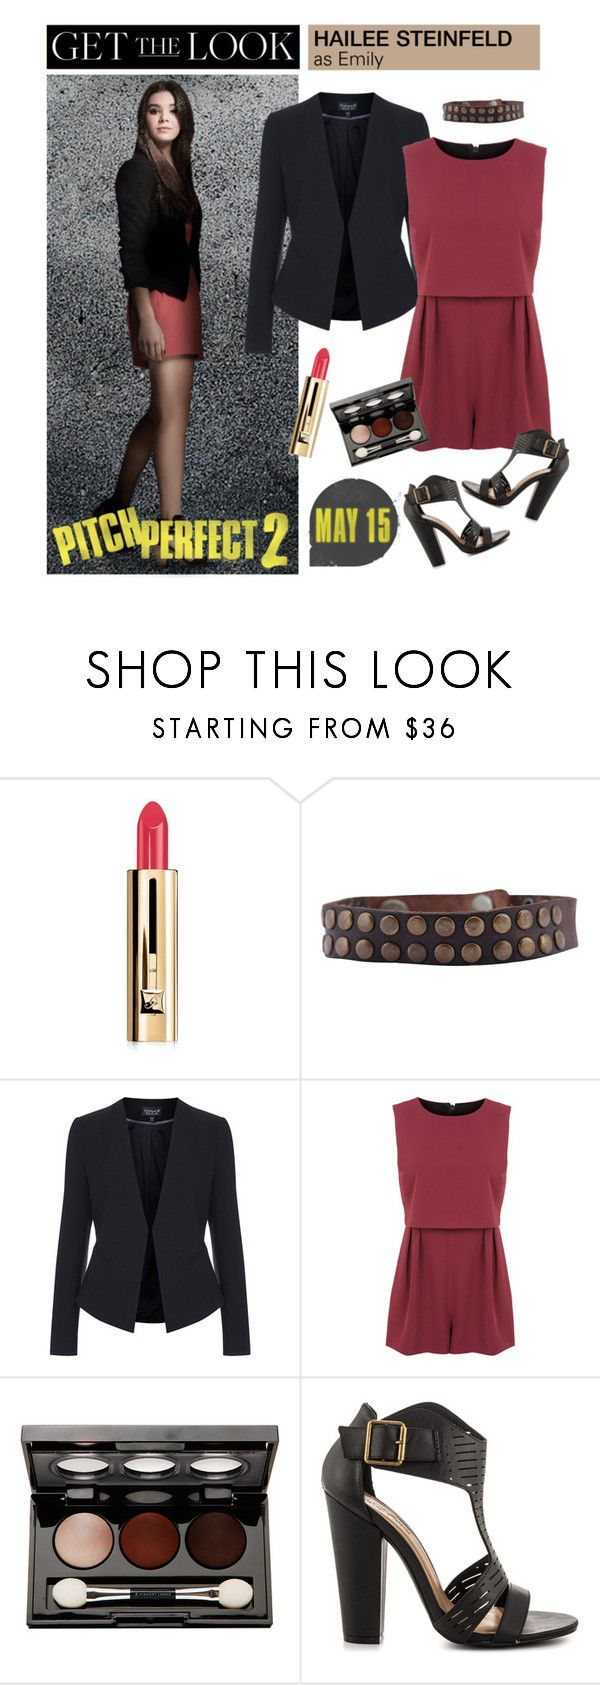 """""""Get the Look: Hailee Steinfeld in Pitch Perfect 2"""" by polyvore-editorial ❤ liked on Polyvore featuring Guerlain, HTC, Topshop, Miss Selfridge, Vincent Longo, Michael Antonio, emily, haileesteinfeld and pitchperfect2"""